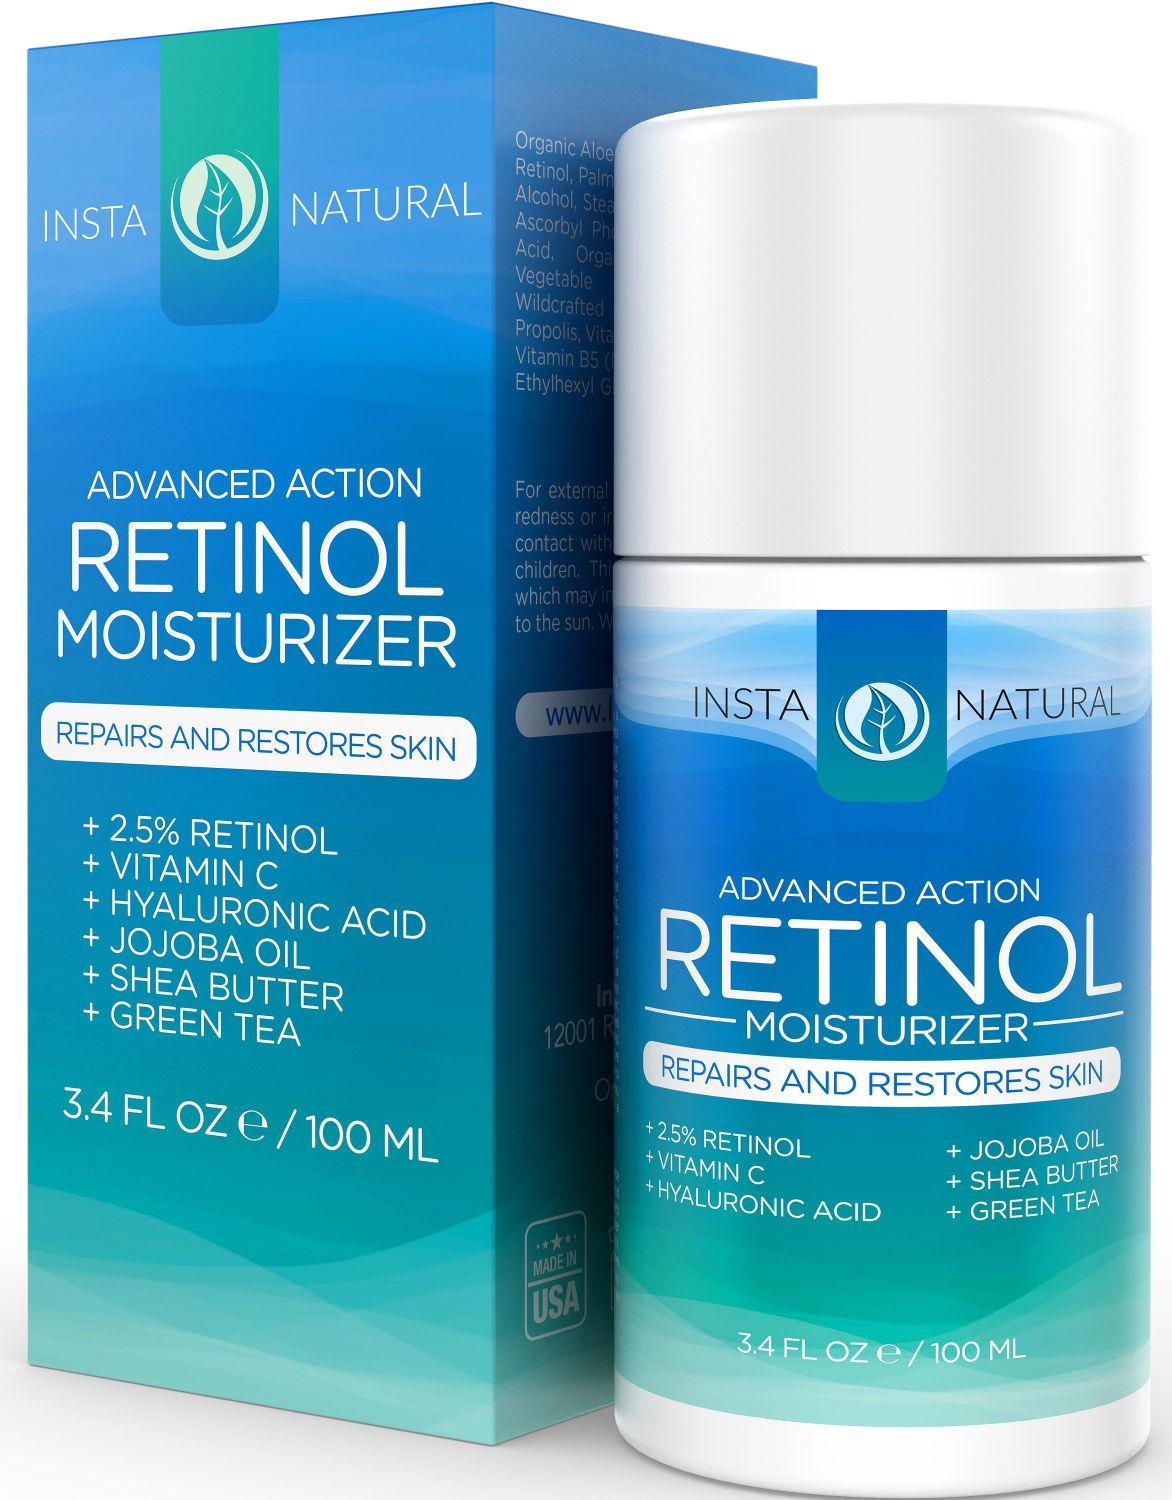 instanatural retinol moisturizer cream with 2 5 retinol 10 vitamin c hyaluronic acid. Black Bedroom Furniture Sets. Home Design Ideas